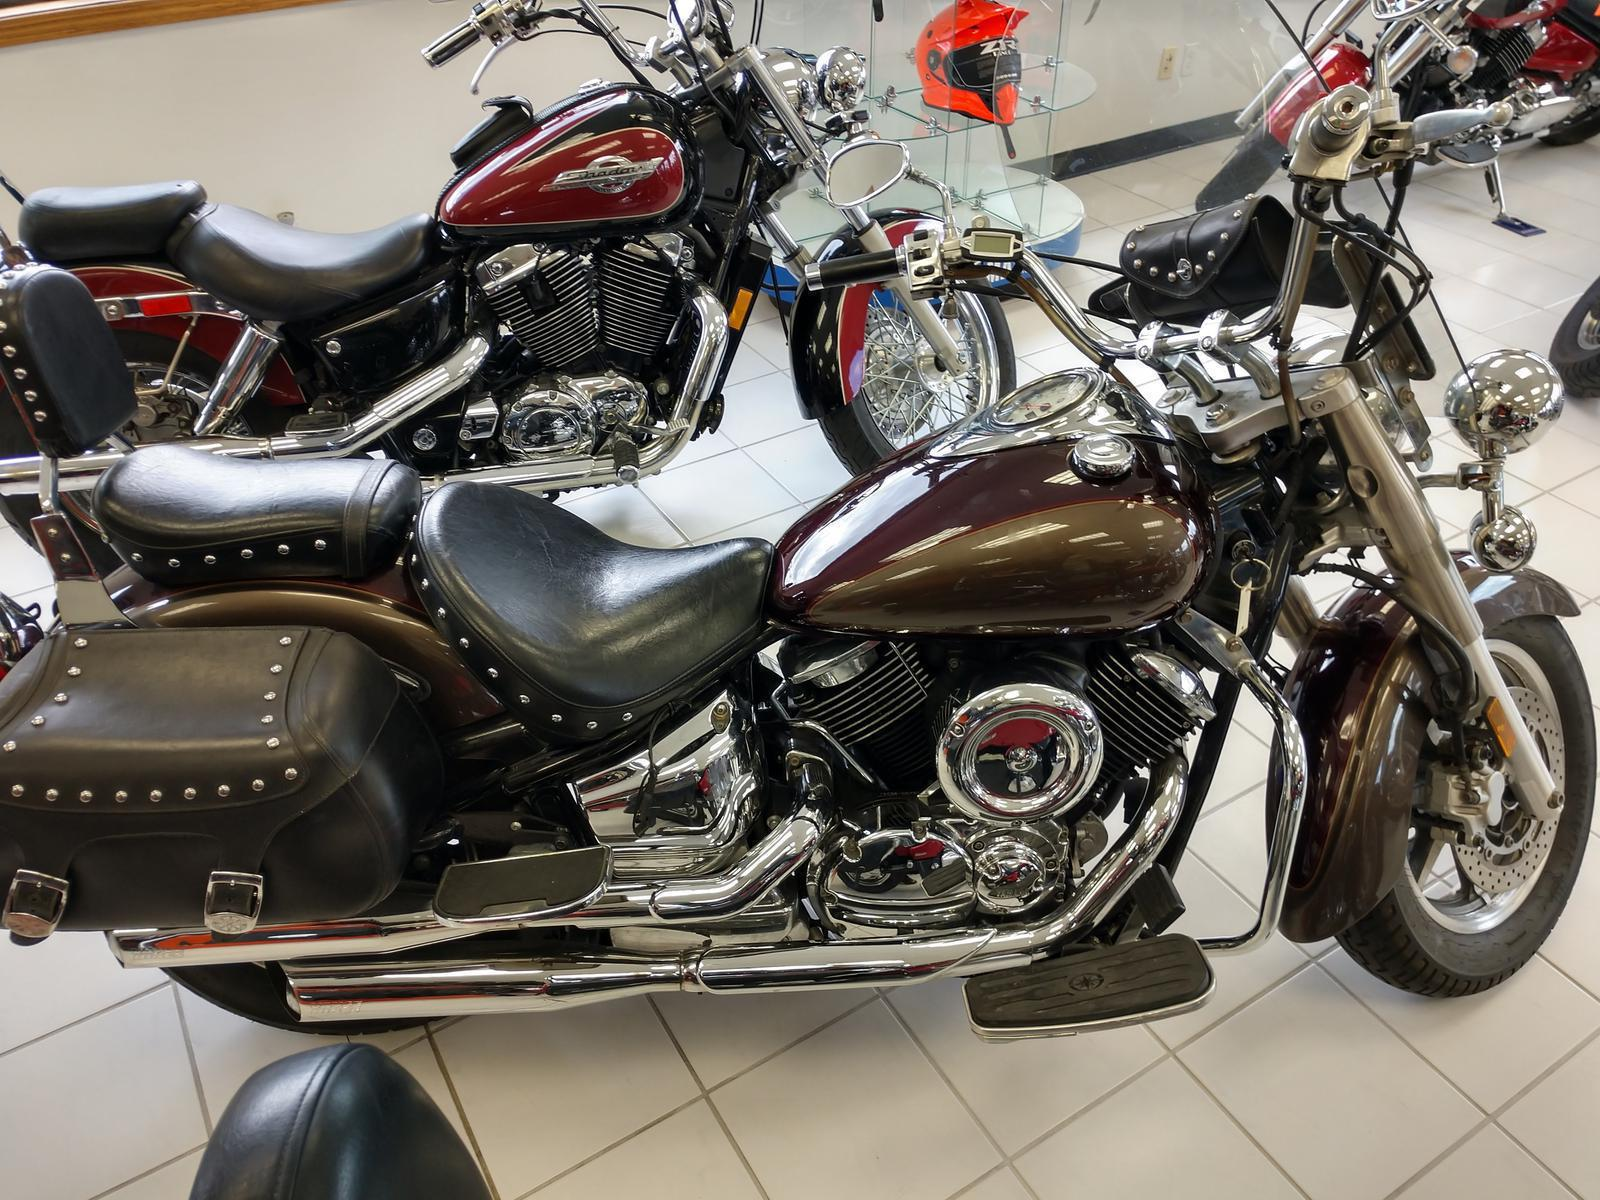 2003 Yamaha V-Star 1100 Classic for sale in Sioux City, IA